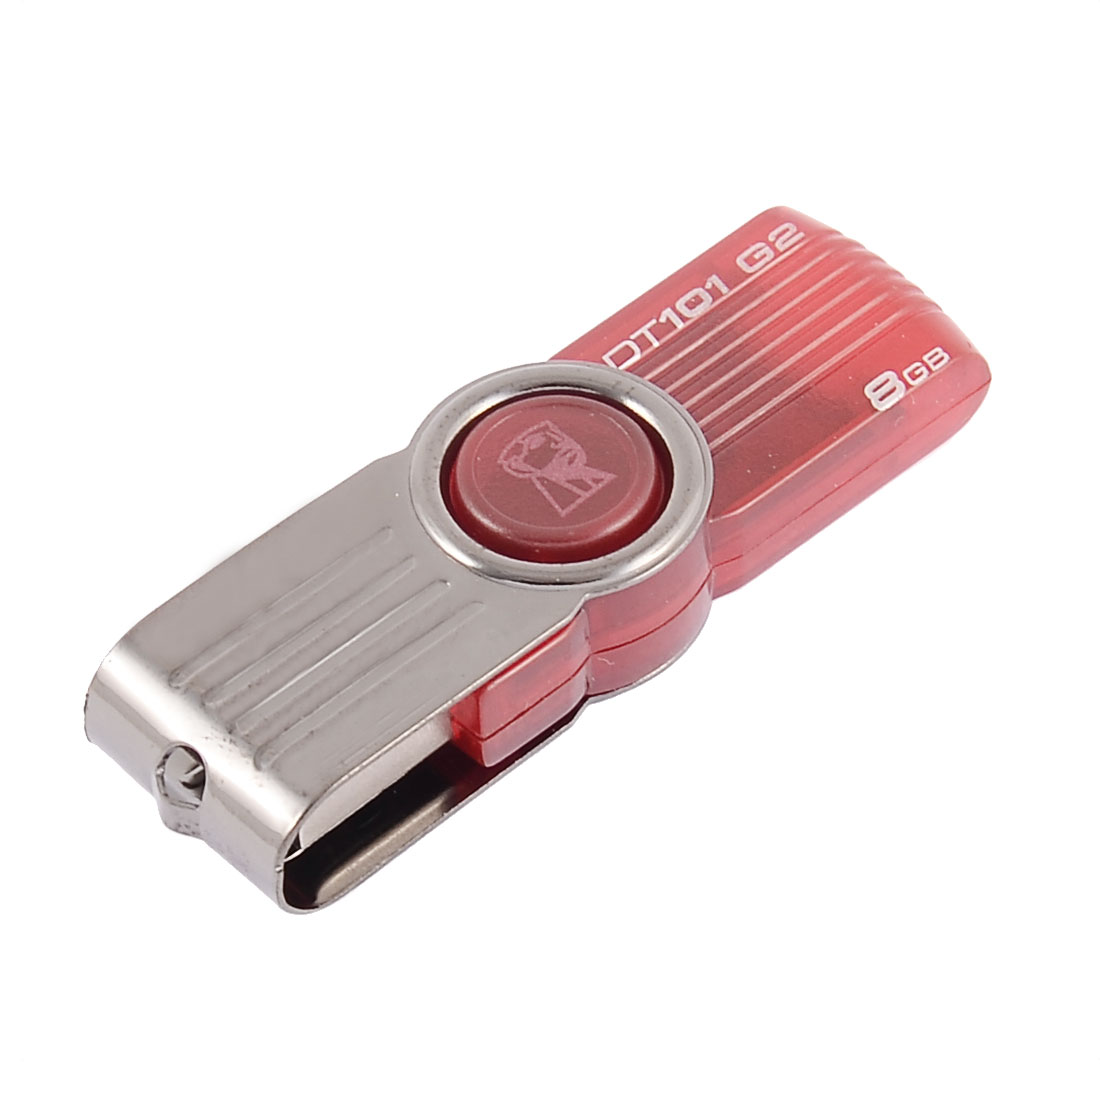 Rotating USB Flash Memory Pen Drive Storage Media U-Disk Red 8GB - image 3 of 3